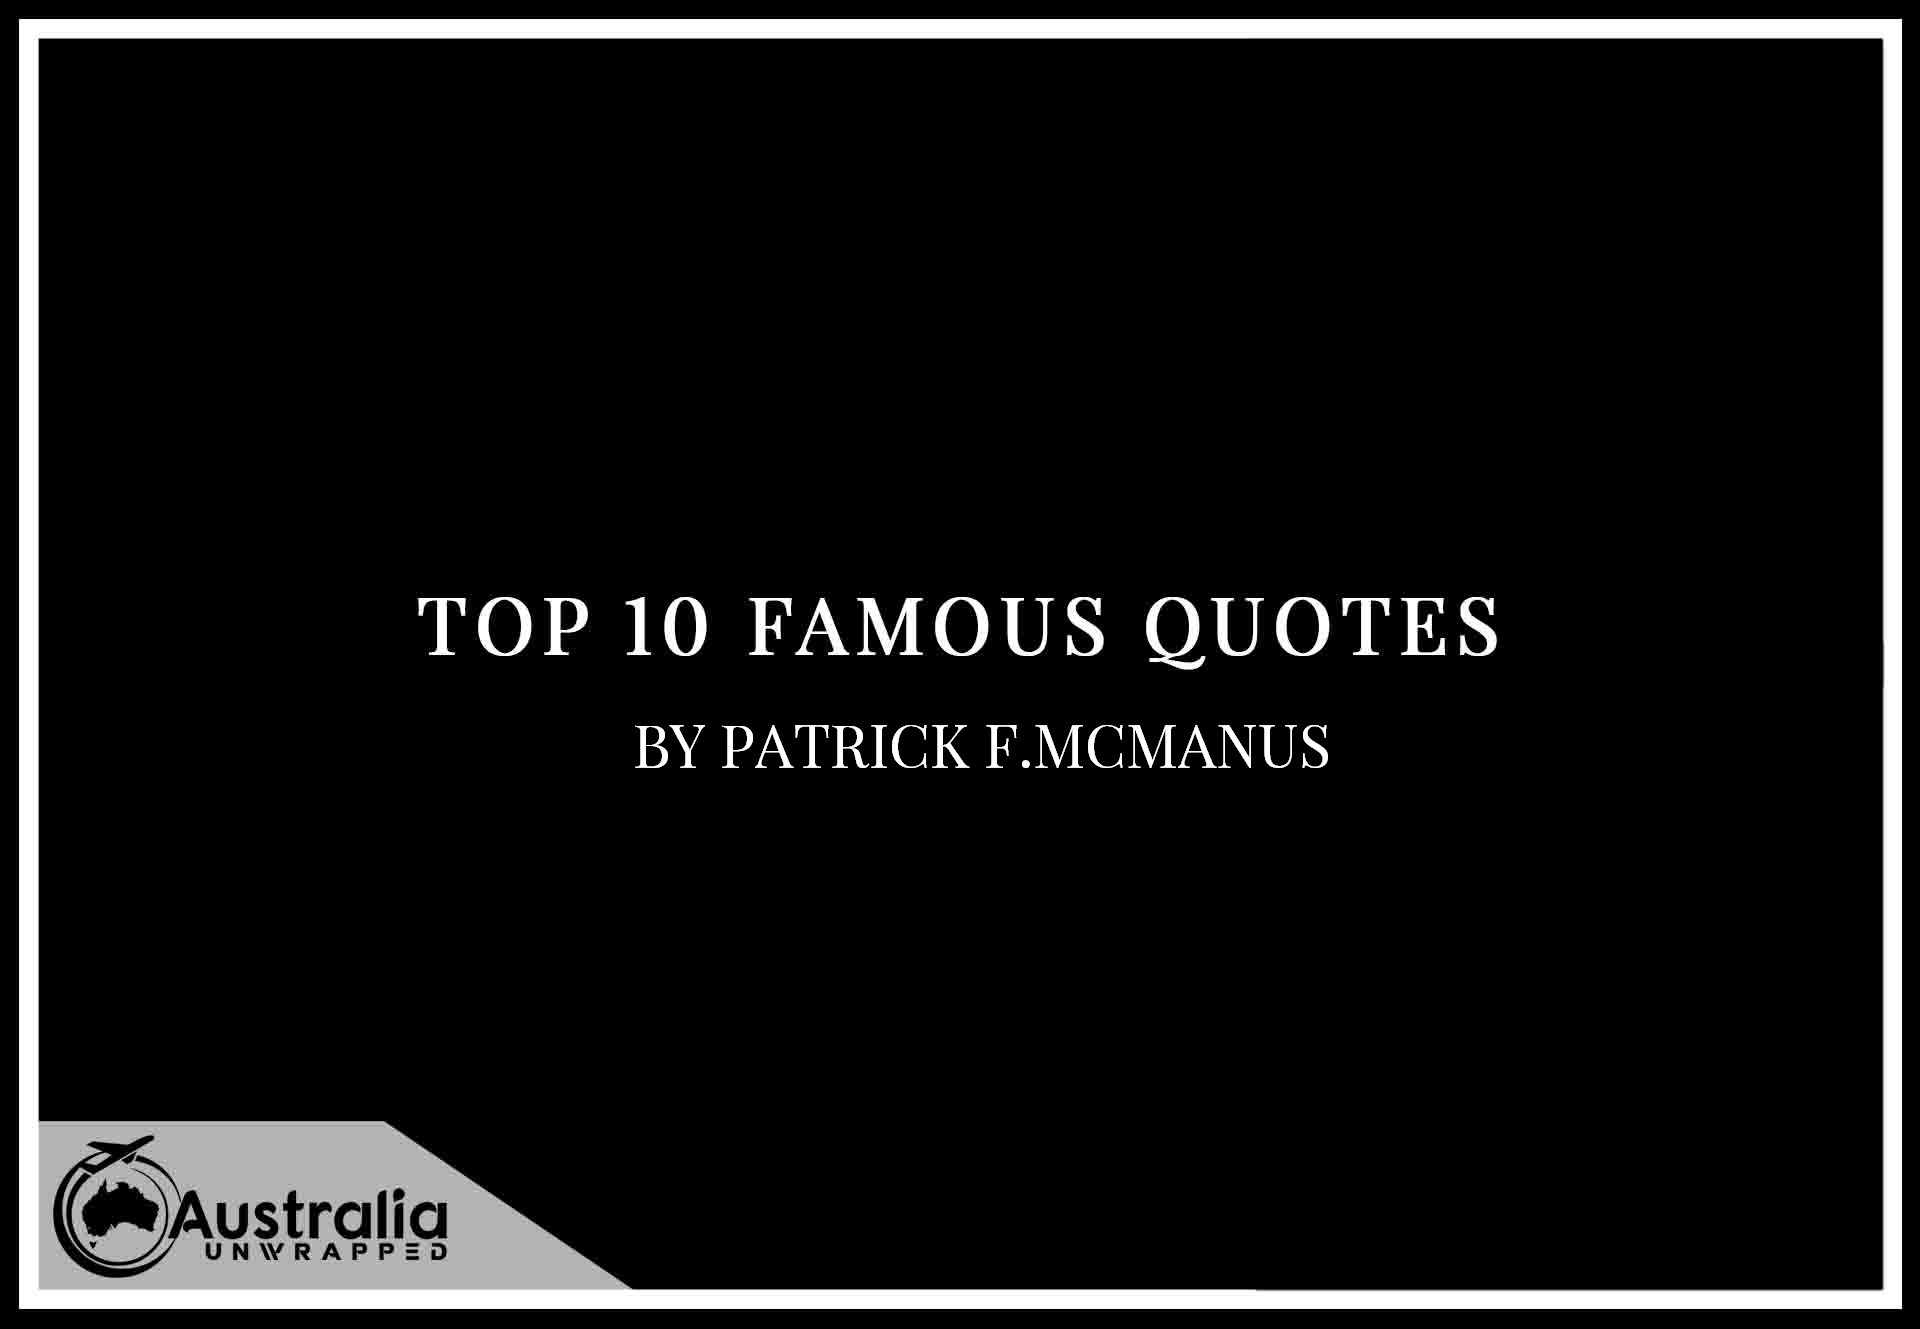 Top 10 Famous Quotes by Author Patrick F. McManus